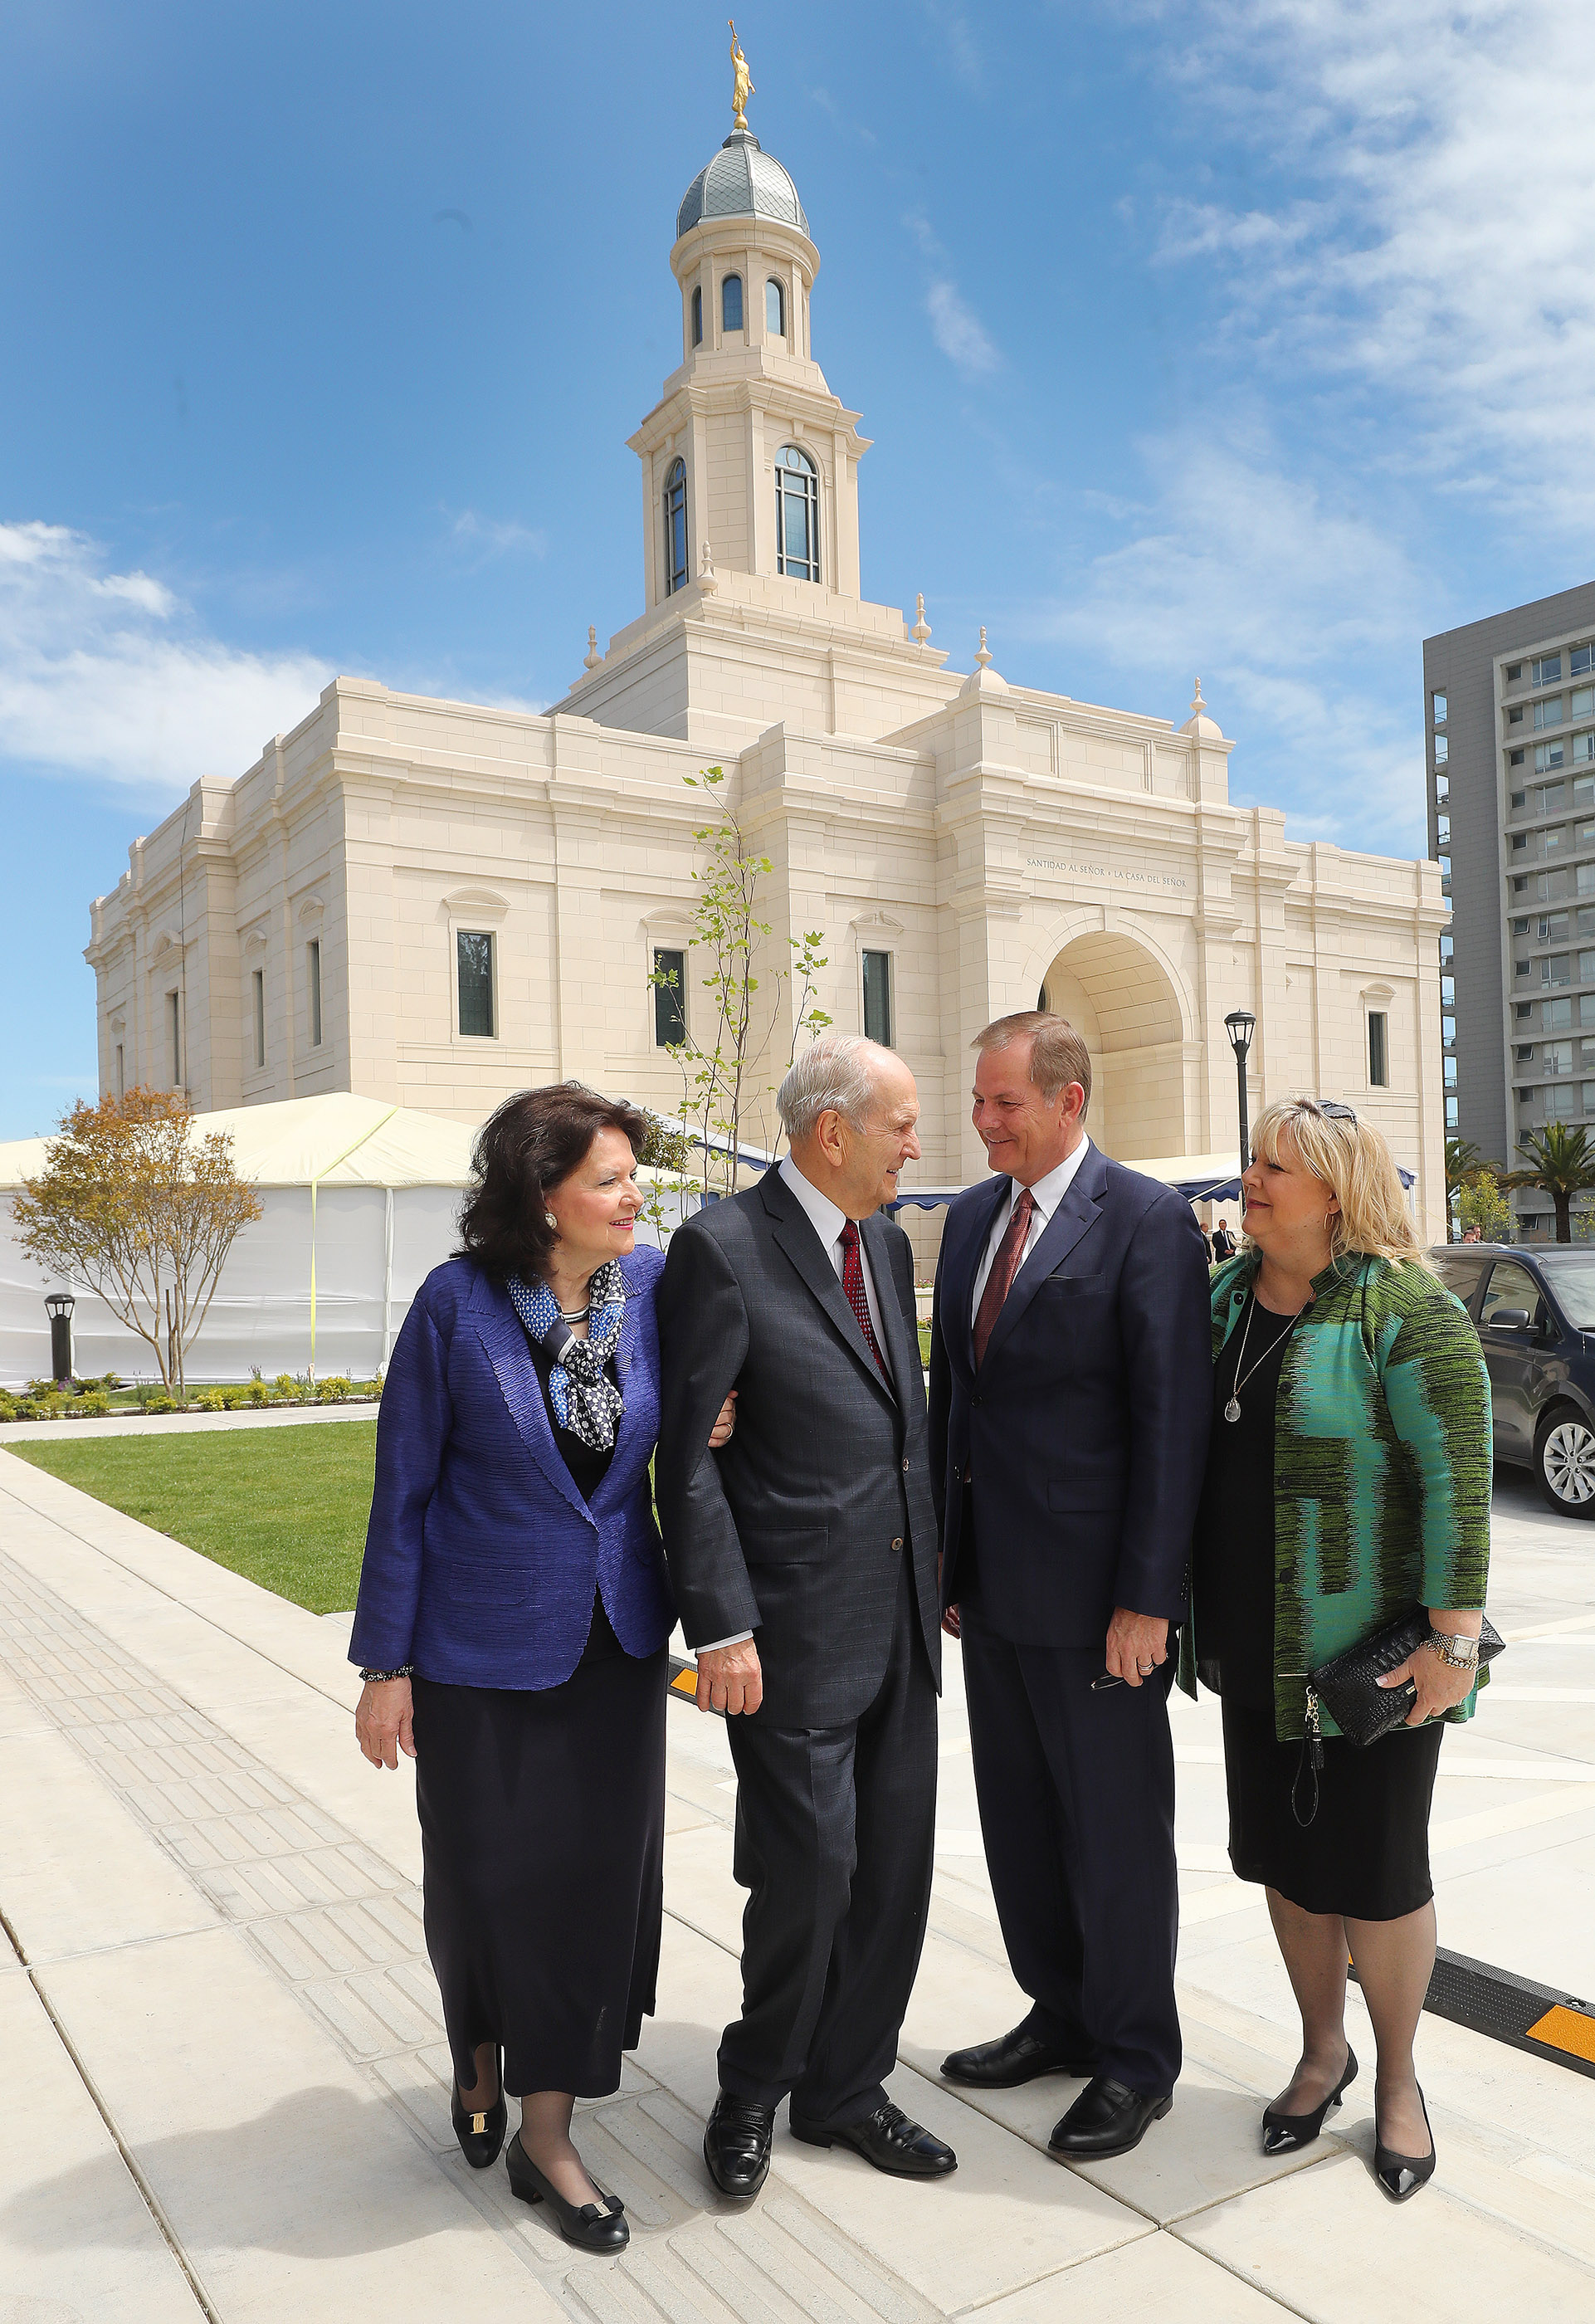 President Russell M. Nelson of The Church of Jesus Christ of Latter-day Saints and his wife, Sister Wendy Nelson, and Elder Gary E. Stevenson of the Quorum of the Twelve Apostles, and his wife, Sister Lesa Stevenson, stand near the temple in Concepcion, Chile, on Saturday, Oct. 27, 2018.